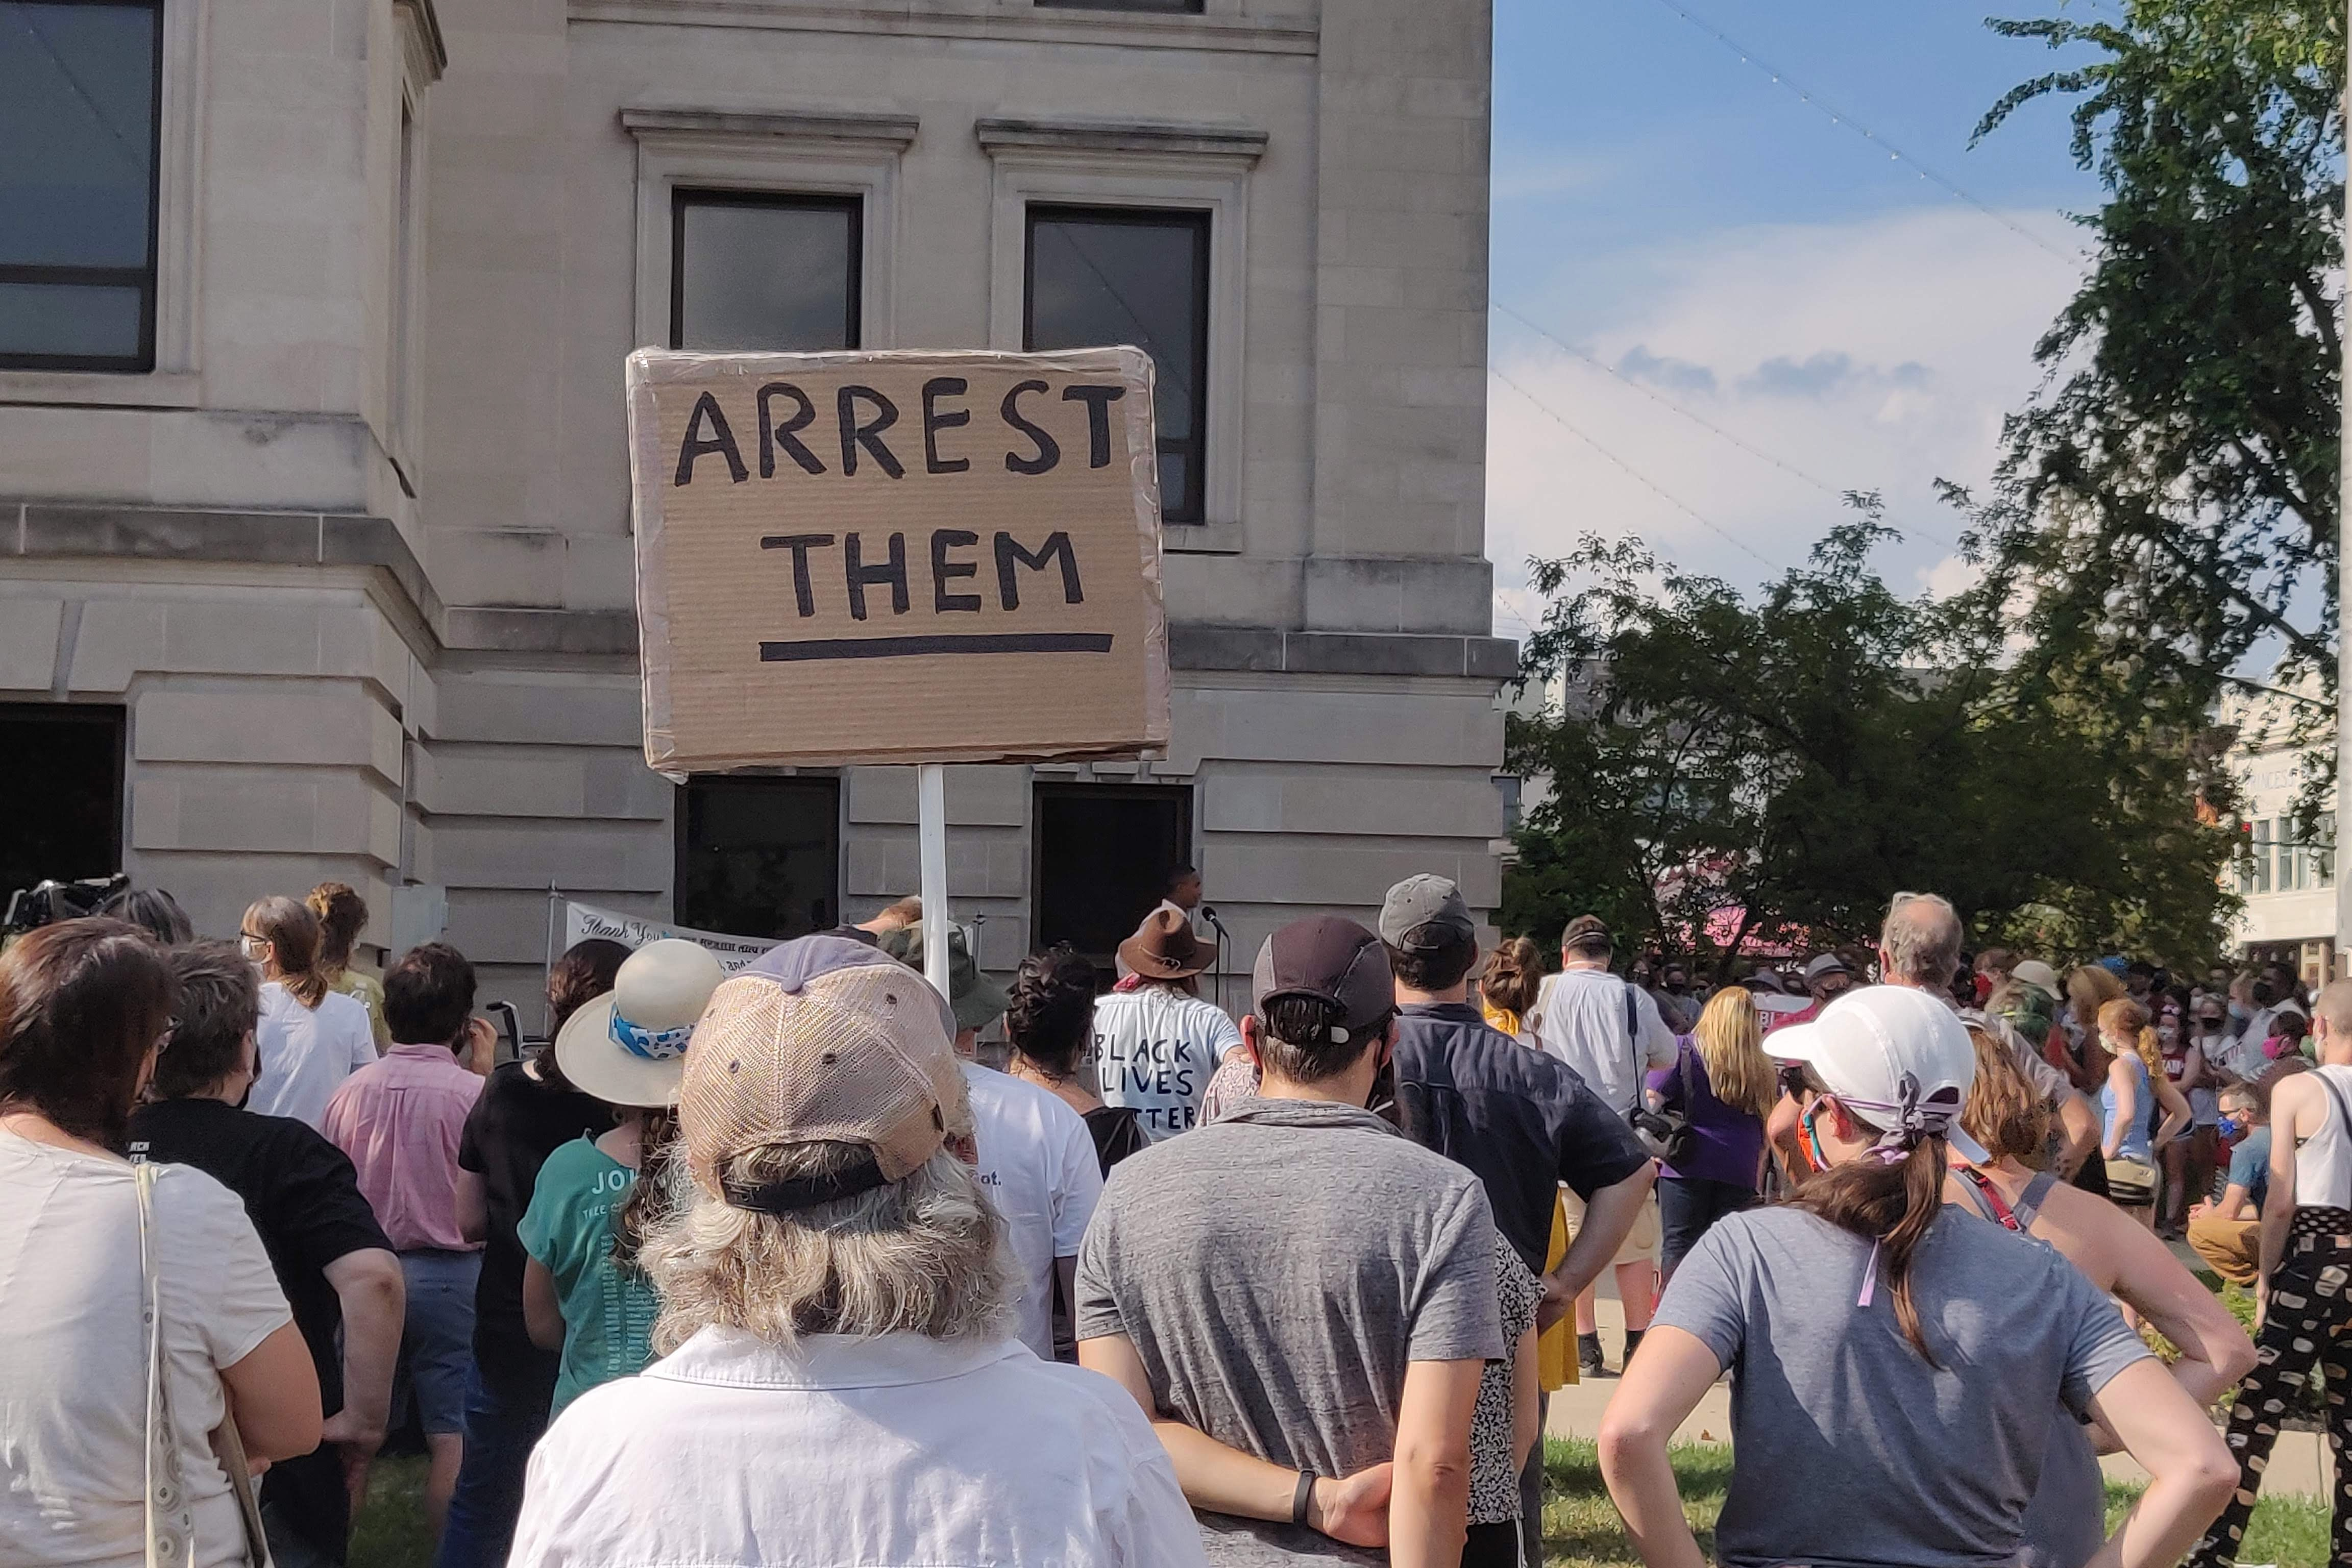 arrest them sign